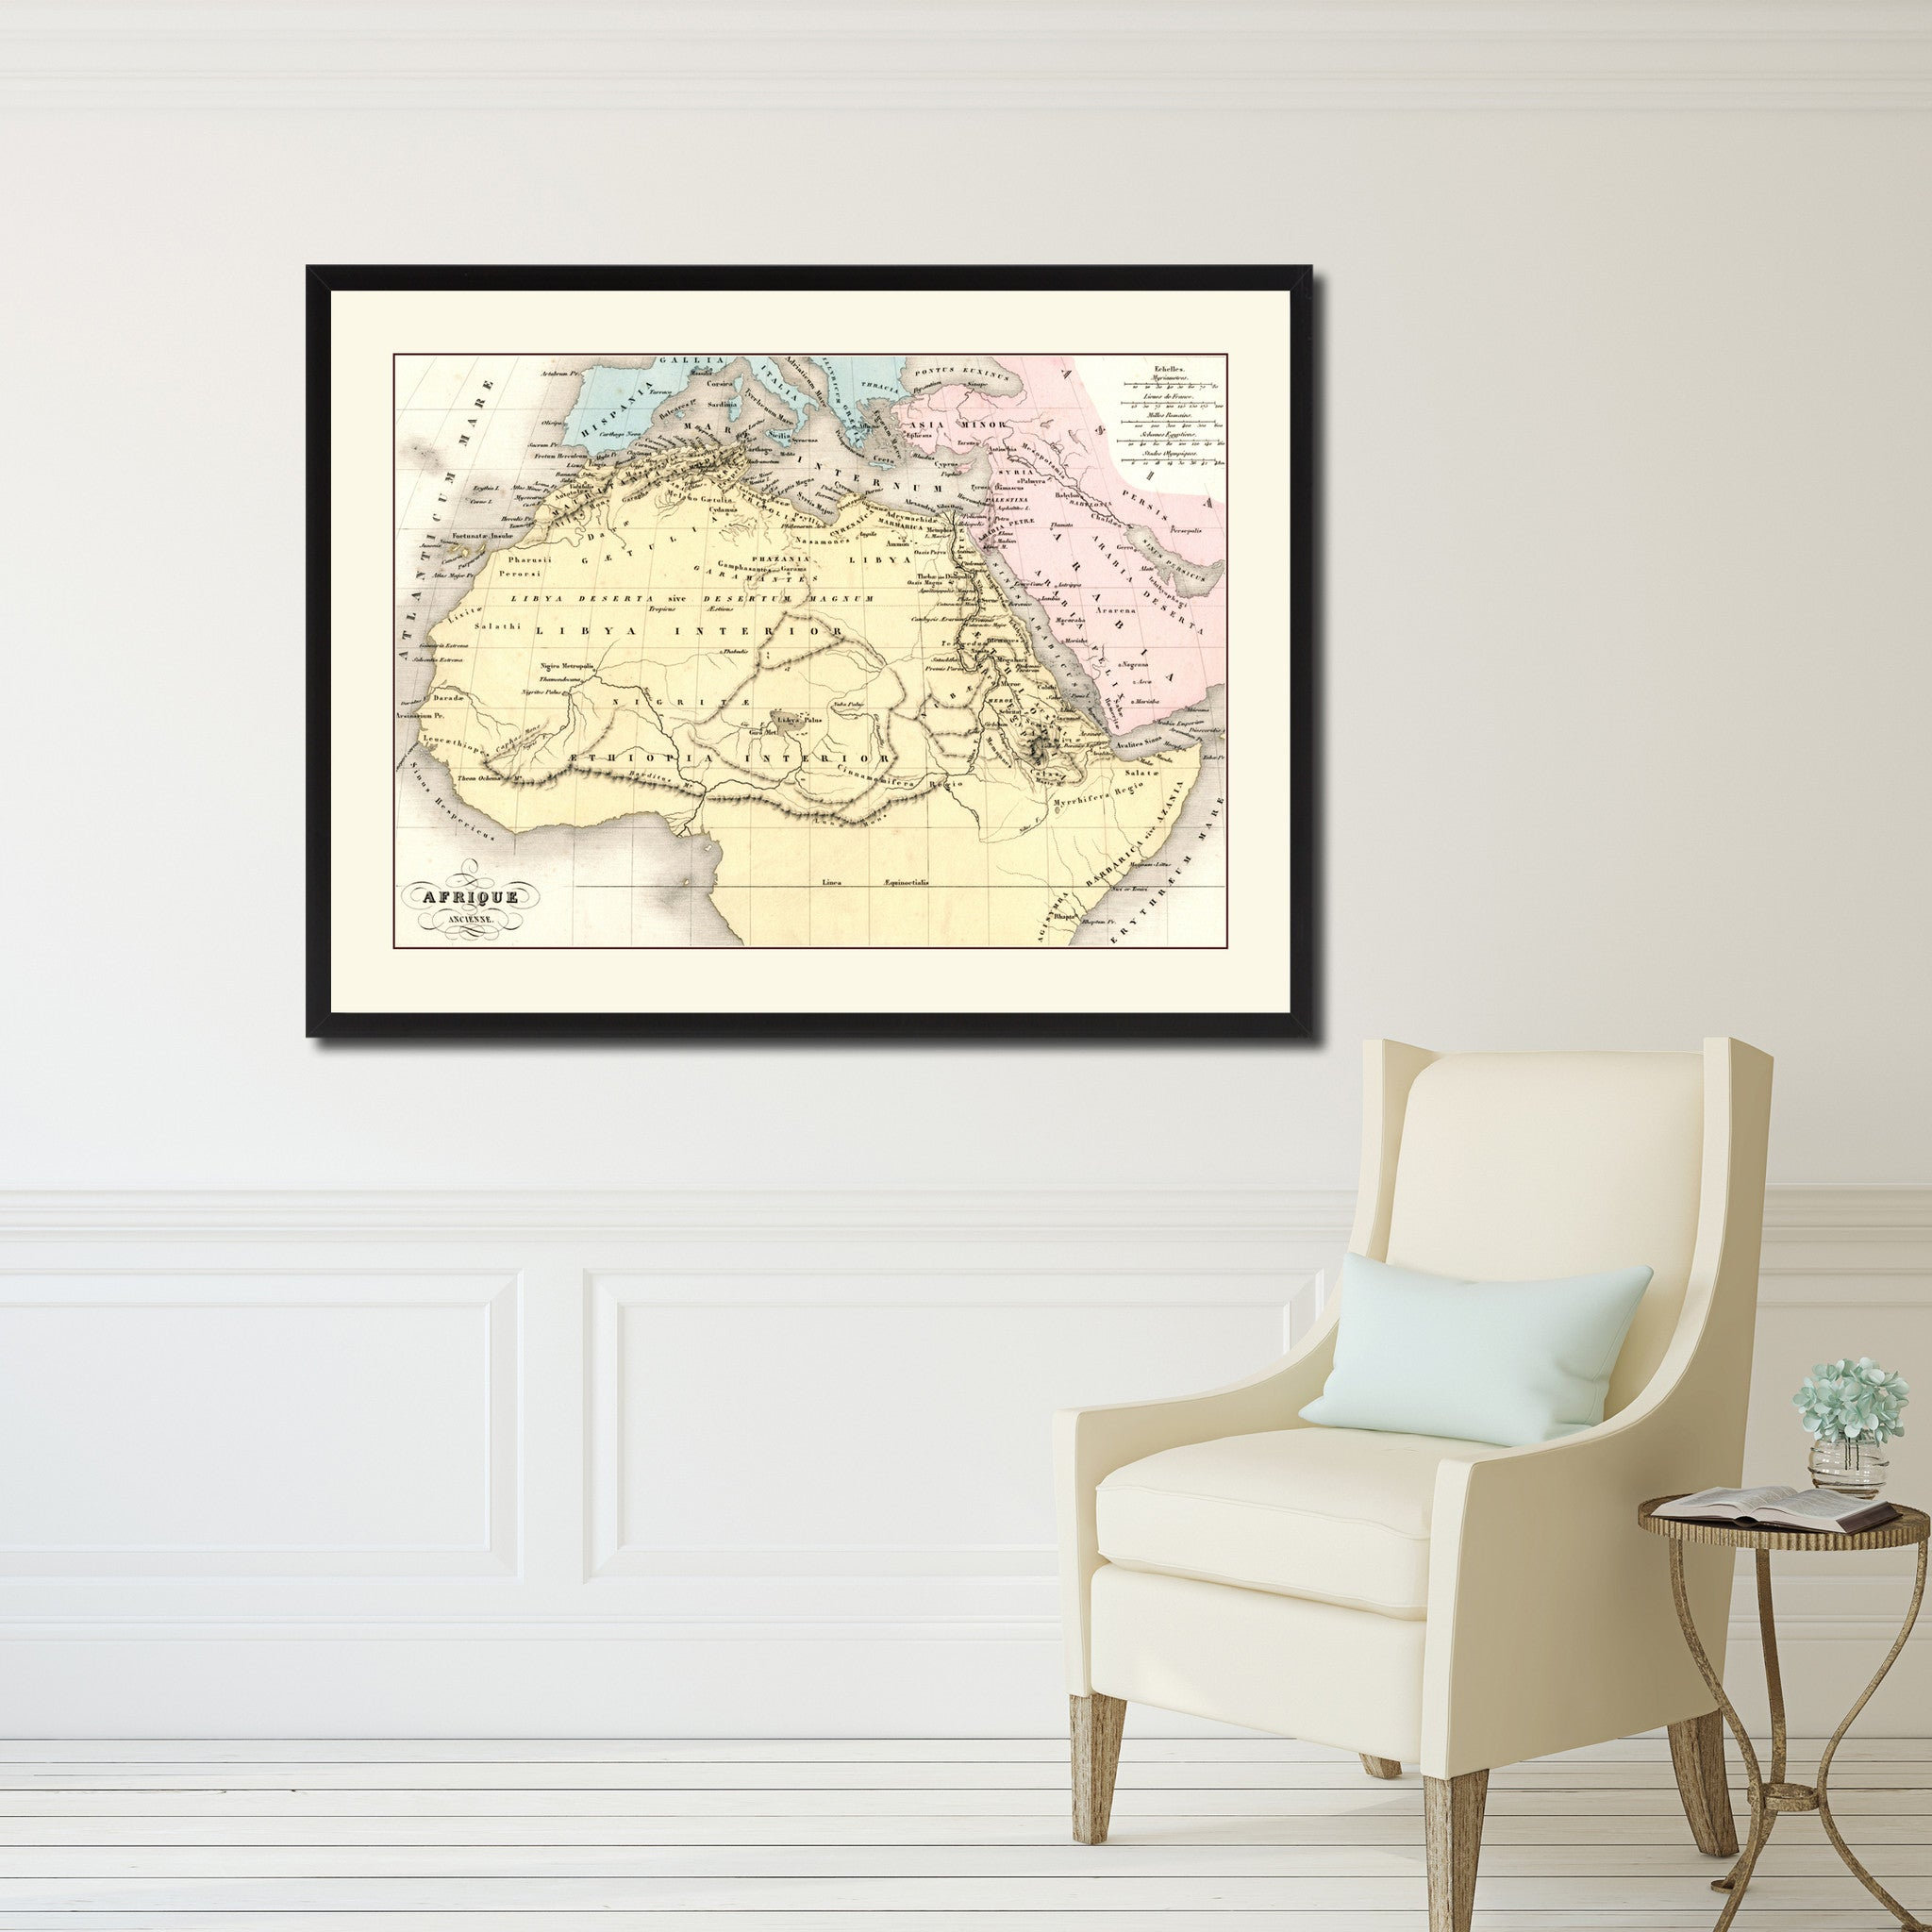 for home product decor world art flylife room decals from com dhgate stickers fairy map wall bedroom living